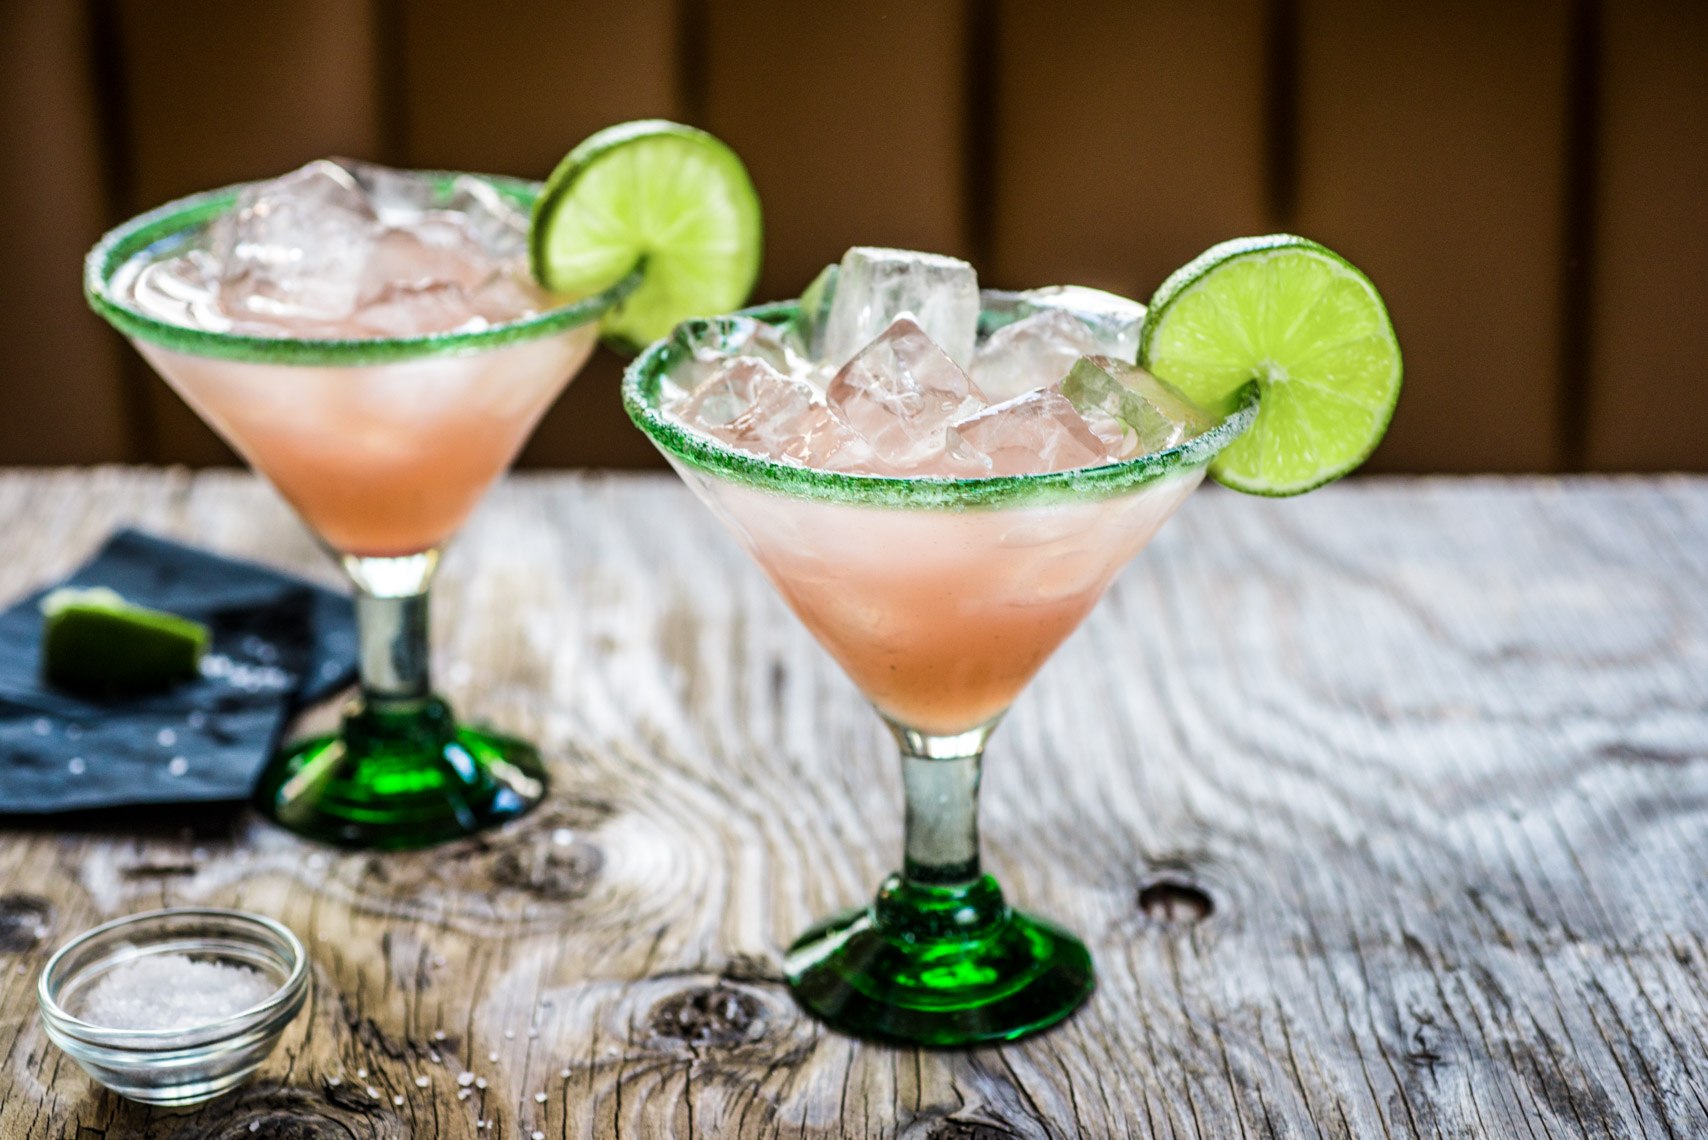 Rustic Pink Margarita with Lime